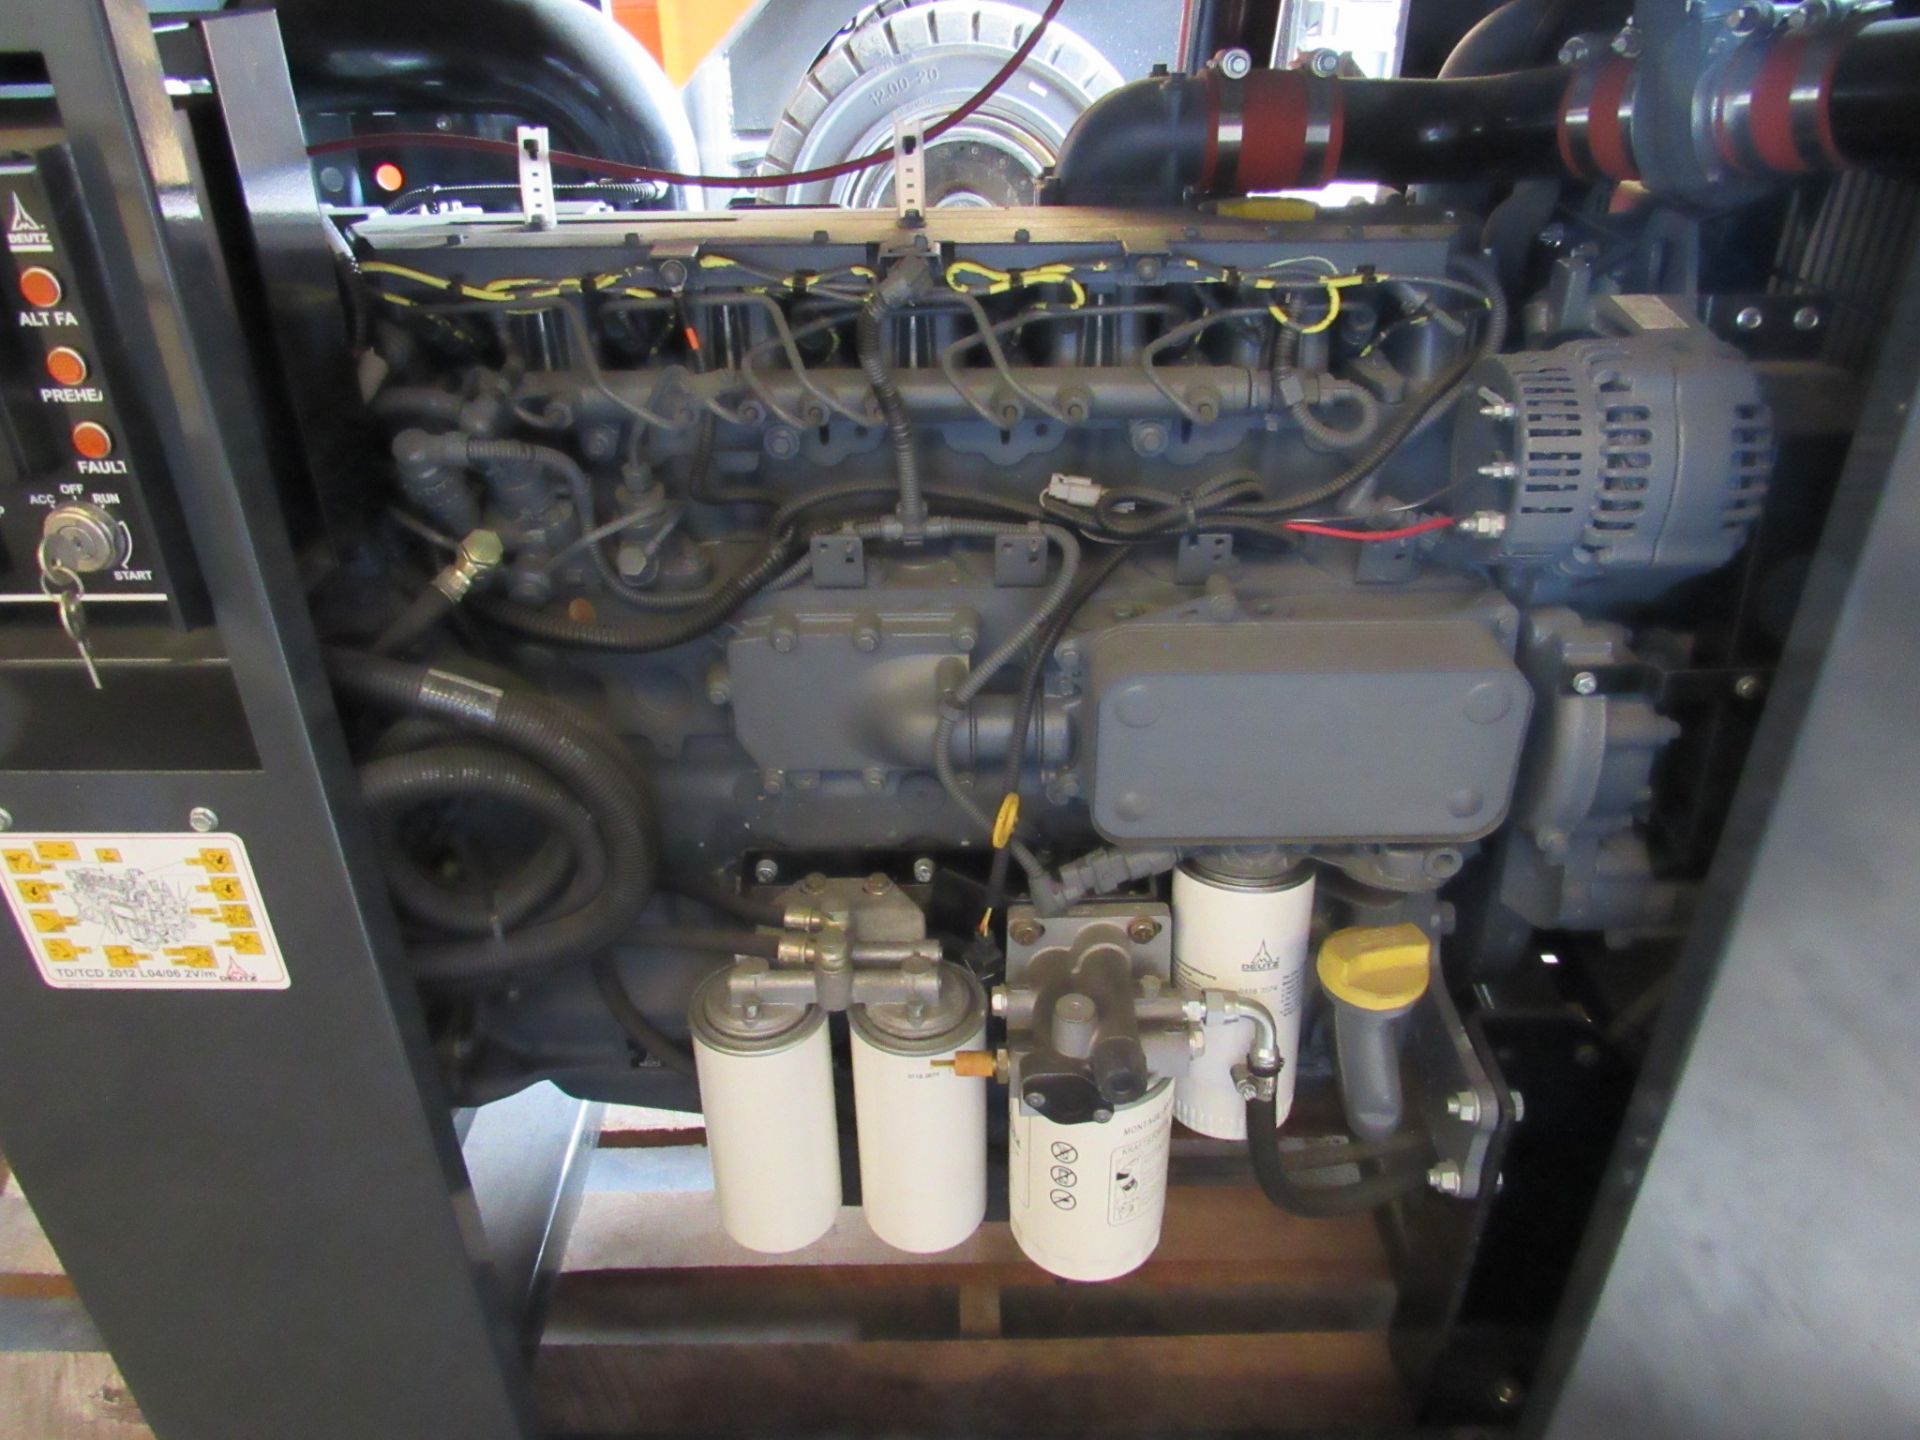 Deutz 197 HP Diesel Engine Power Unit - Image 4 of 5